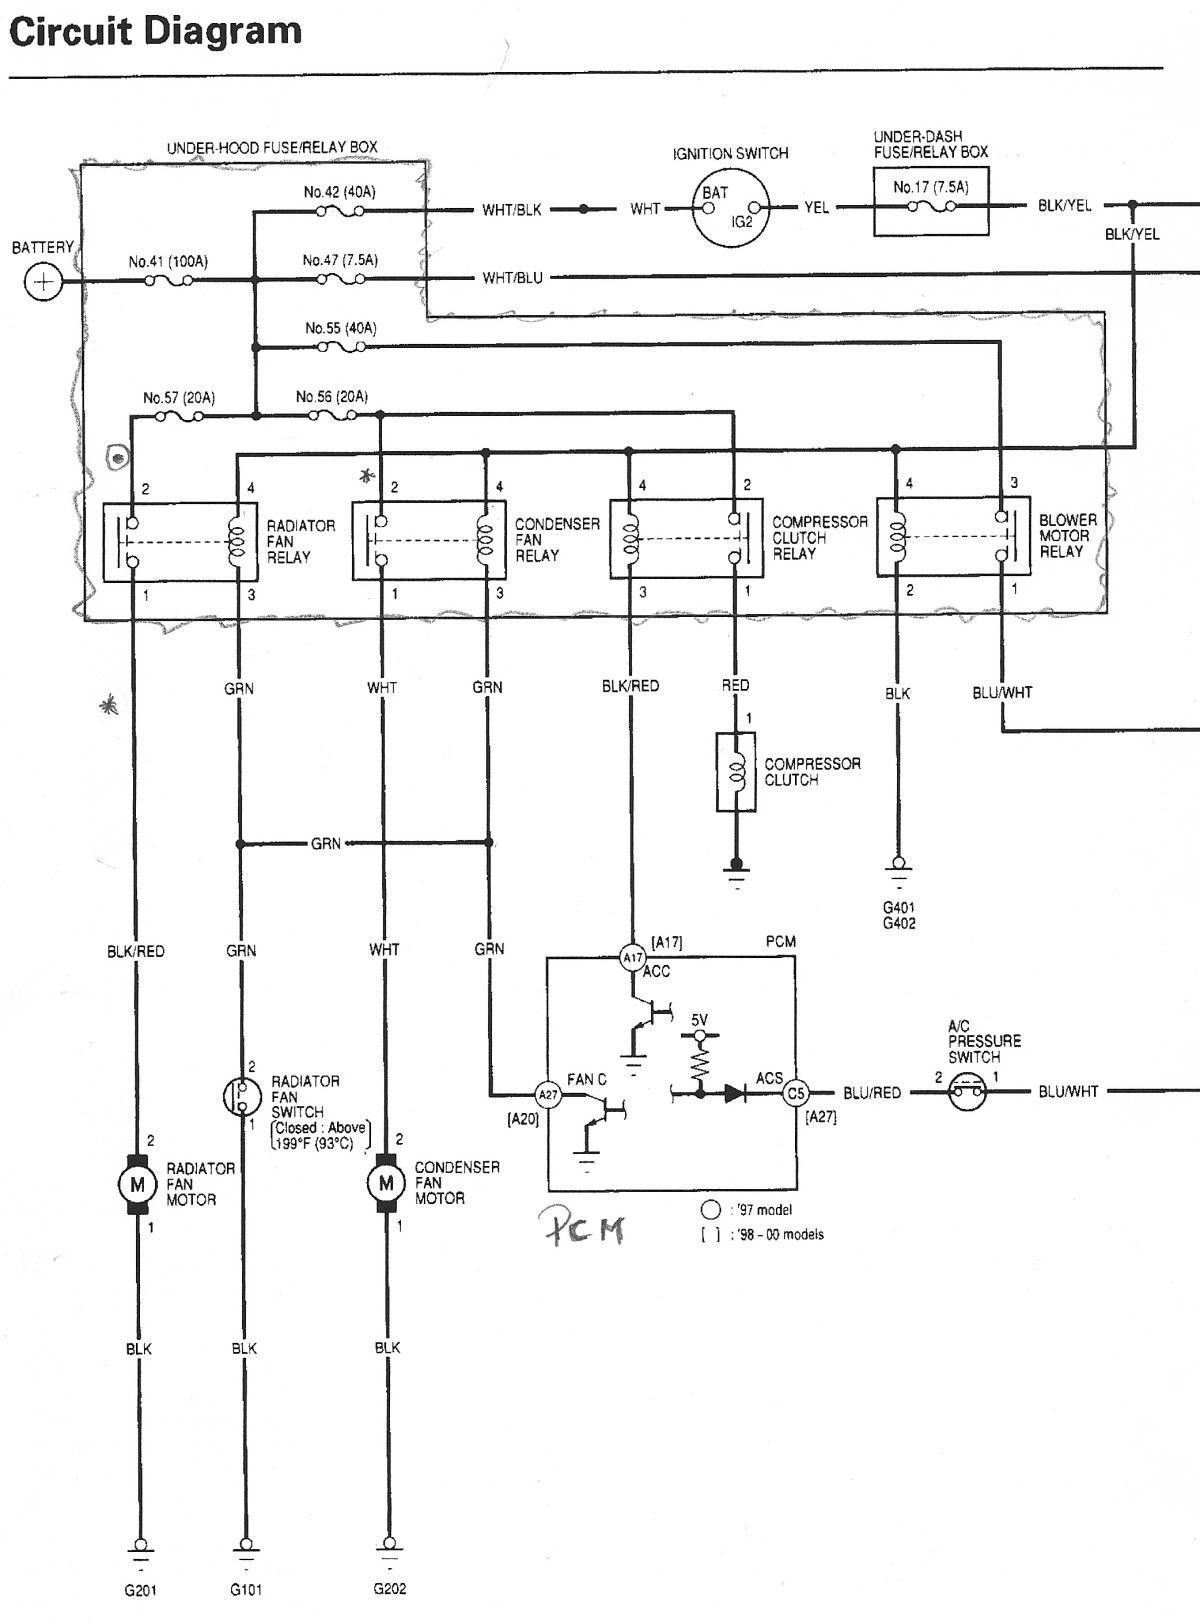 new chrysler electric fan wiring diagram | honda accord, diagram, honda  civic engine  pinterest